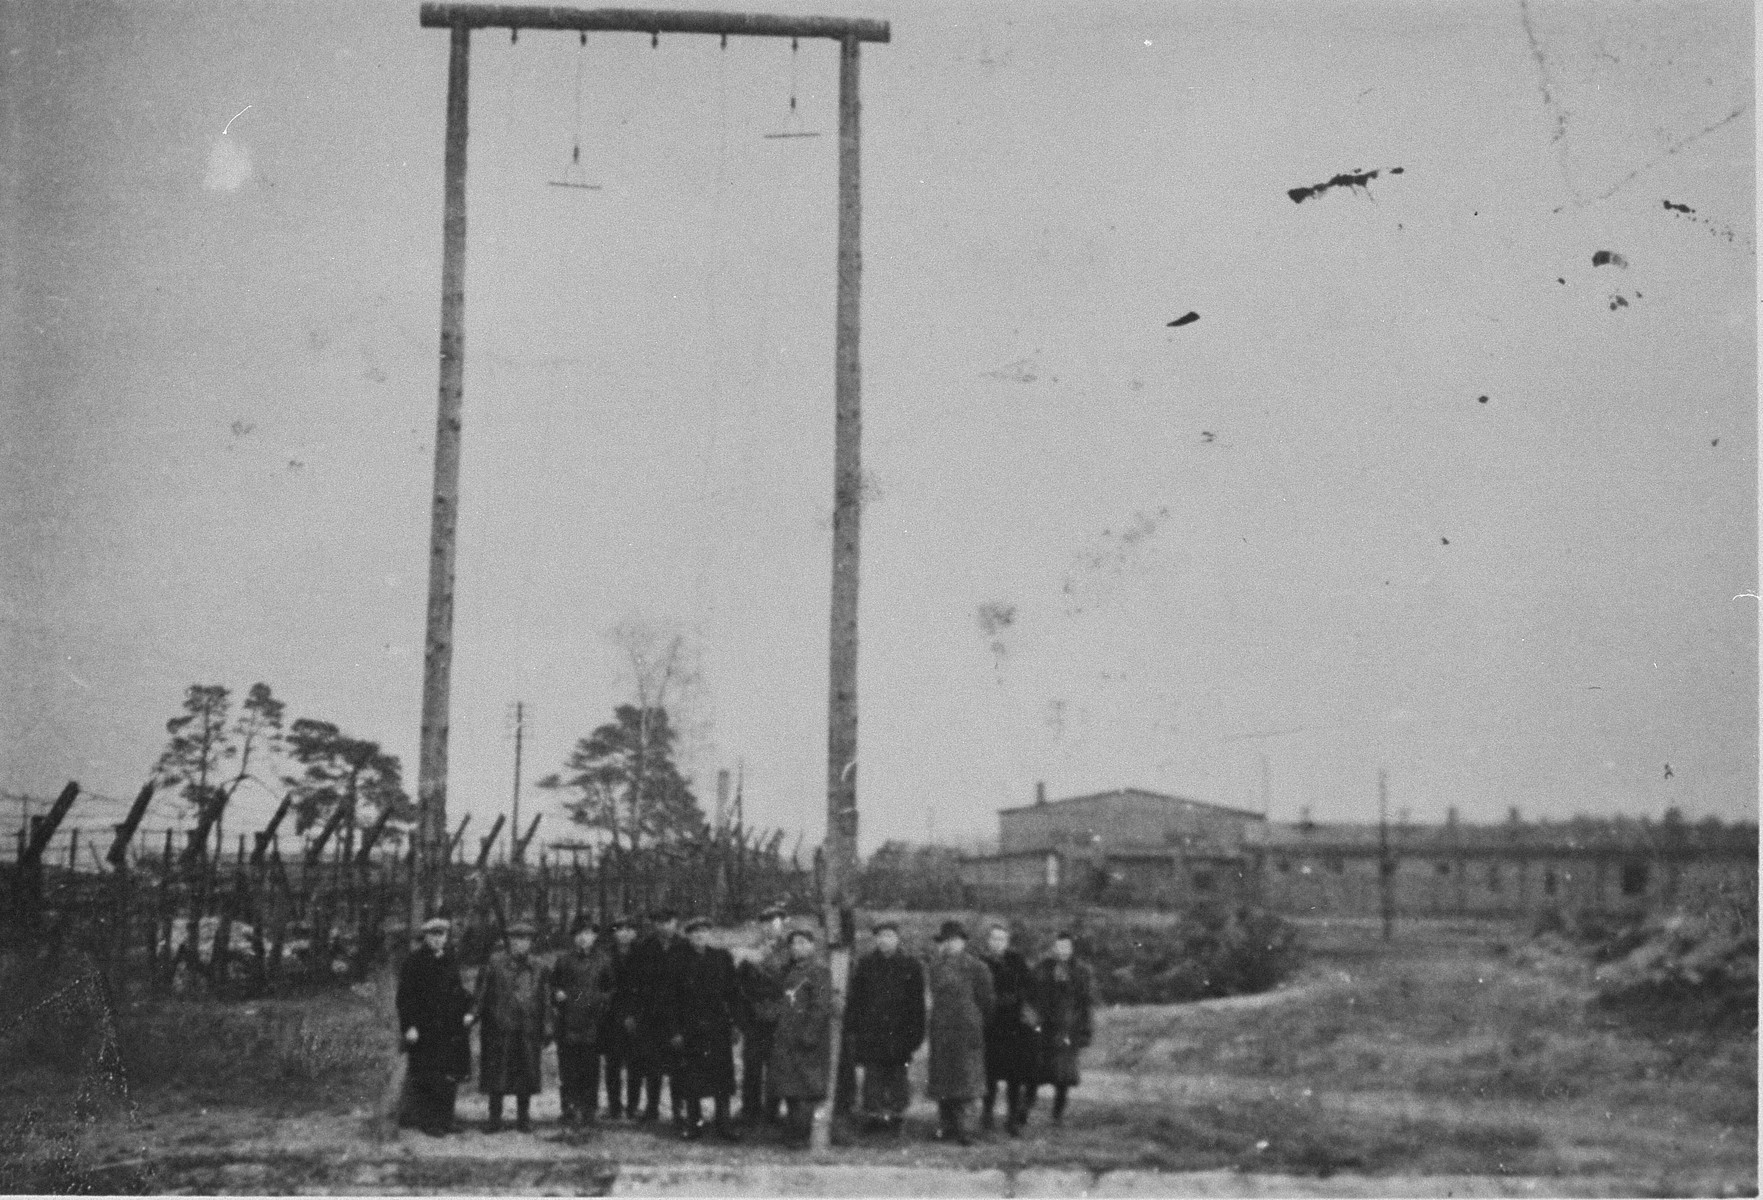 A gallows in Bergen-Belsen after liberation.